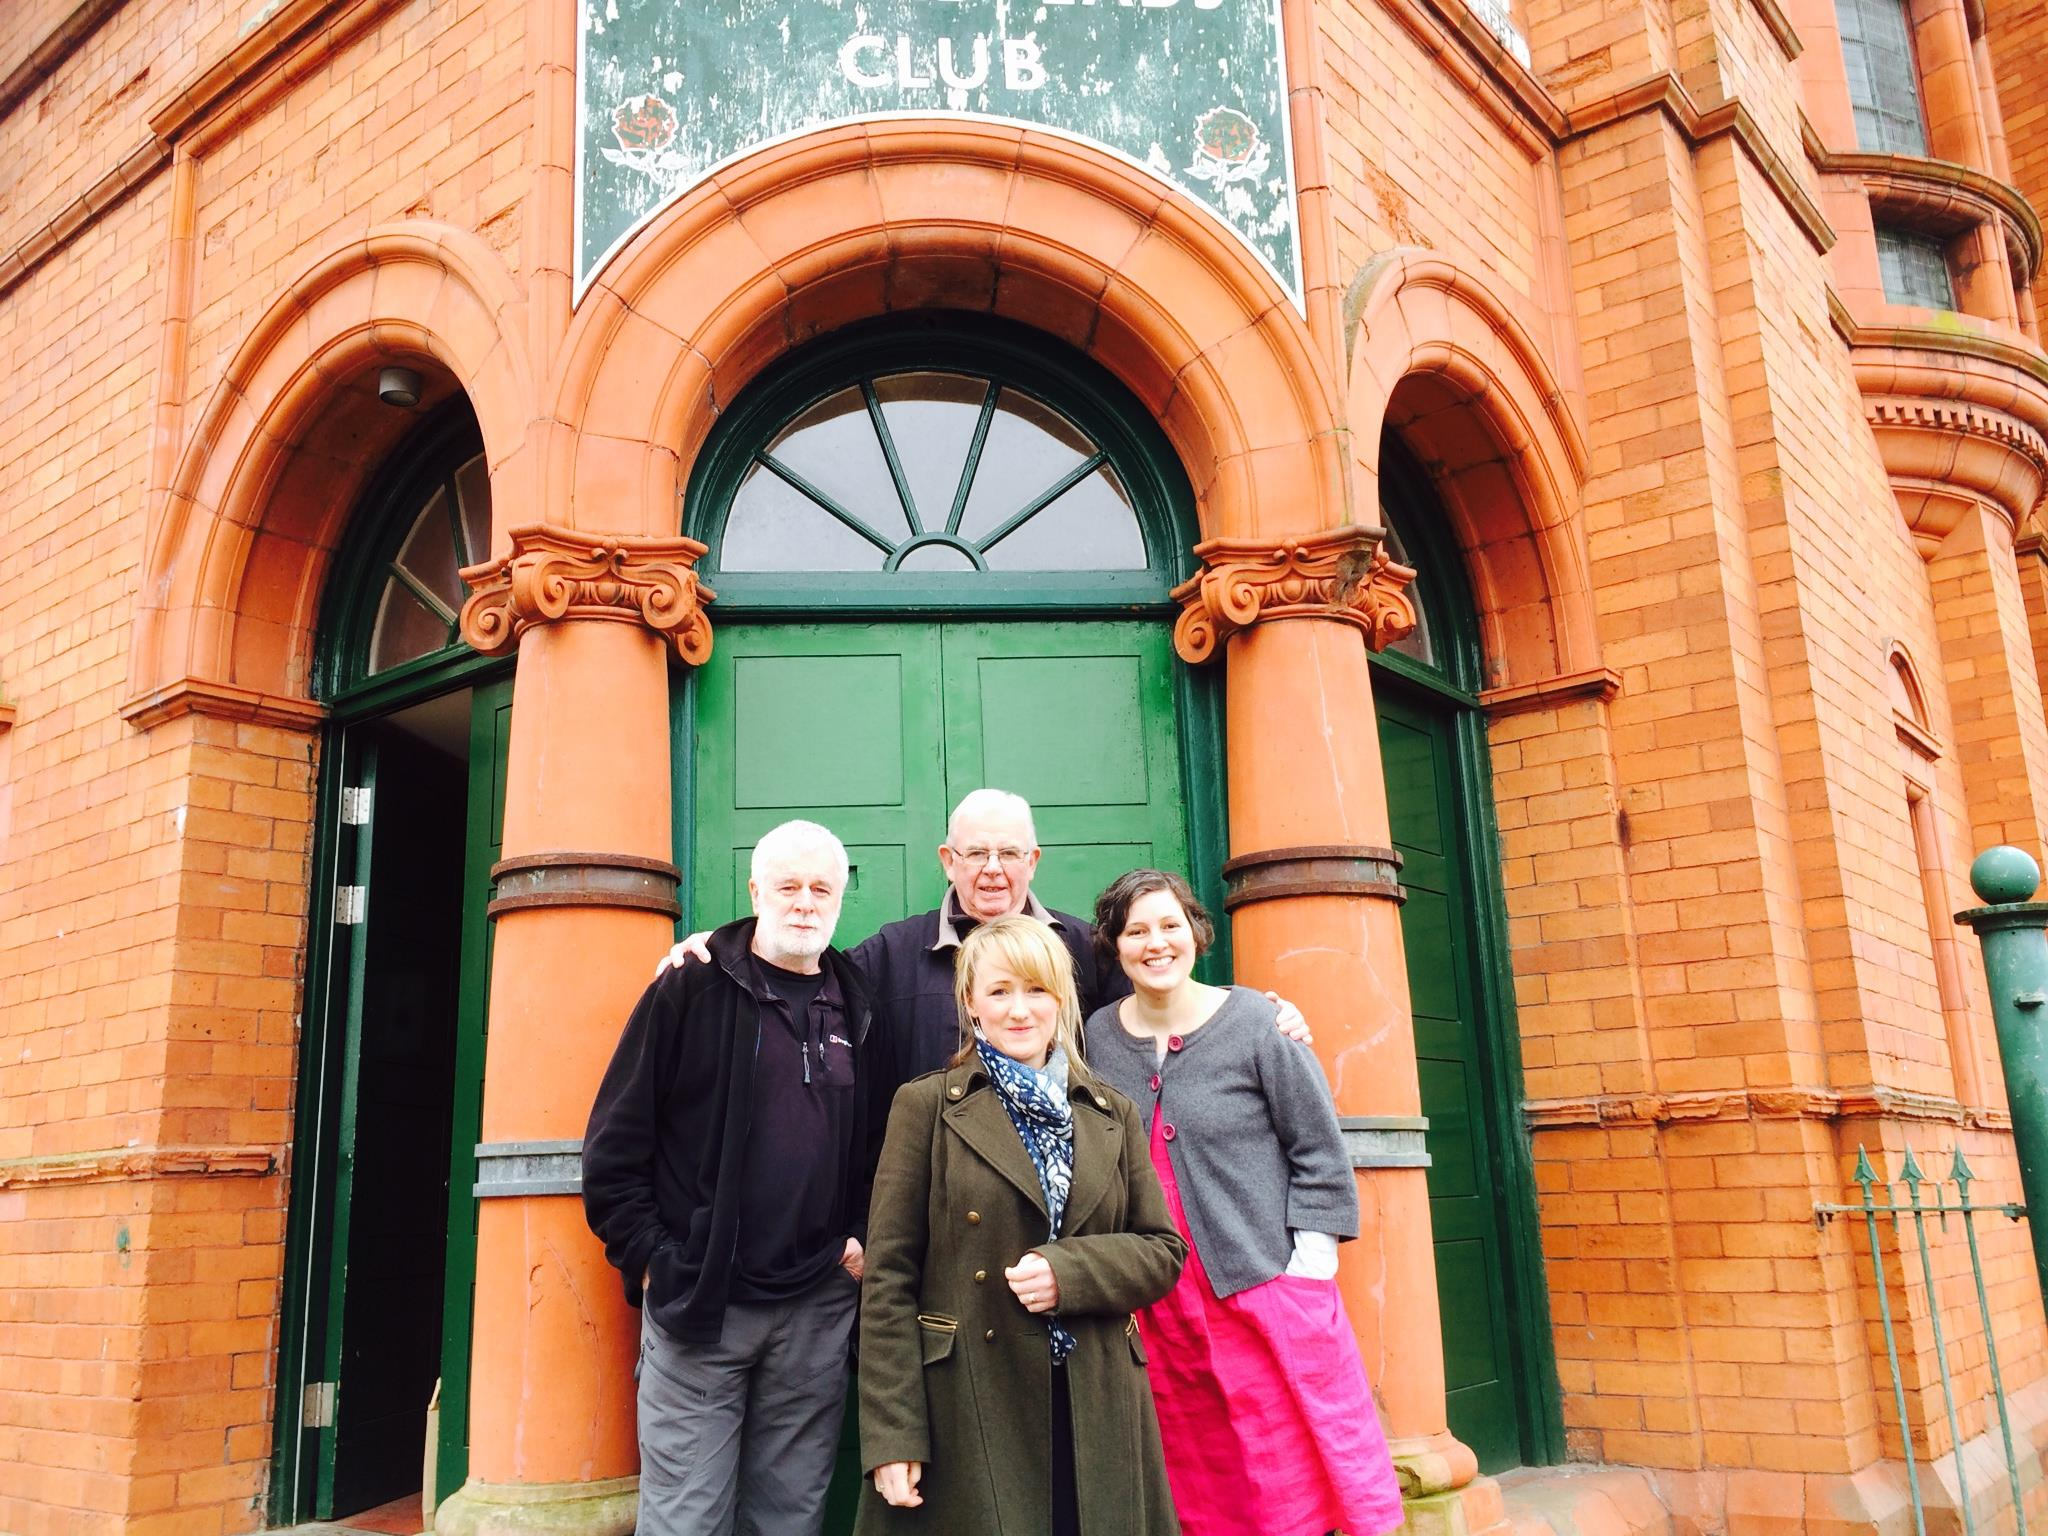 Salford_lads_club_visit_March_18_2016_2.jpg